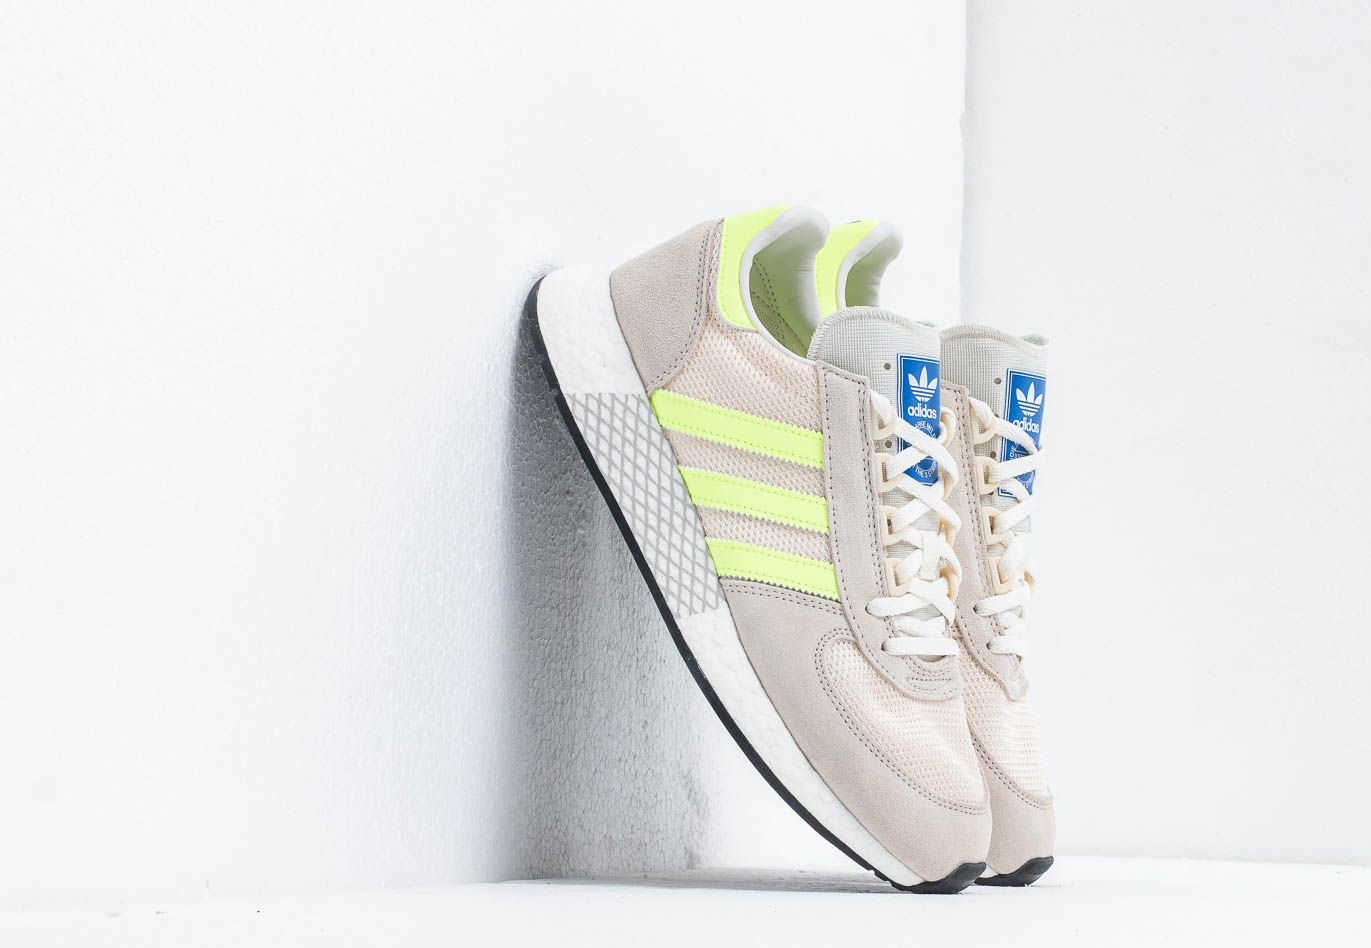 lucha Email hará  adidas Marathon Tech Clear Brown/ Hi-Res Yellow / Ecru Tint Footshop –  GOOFASH